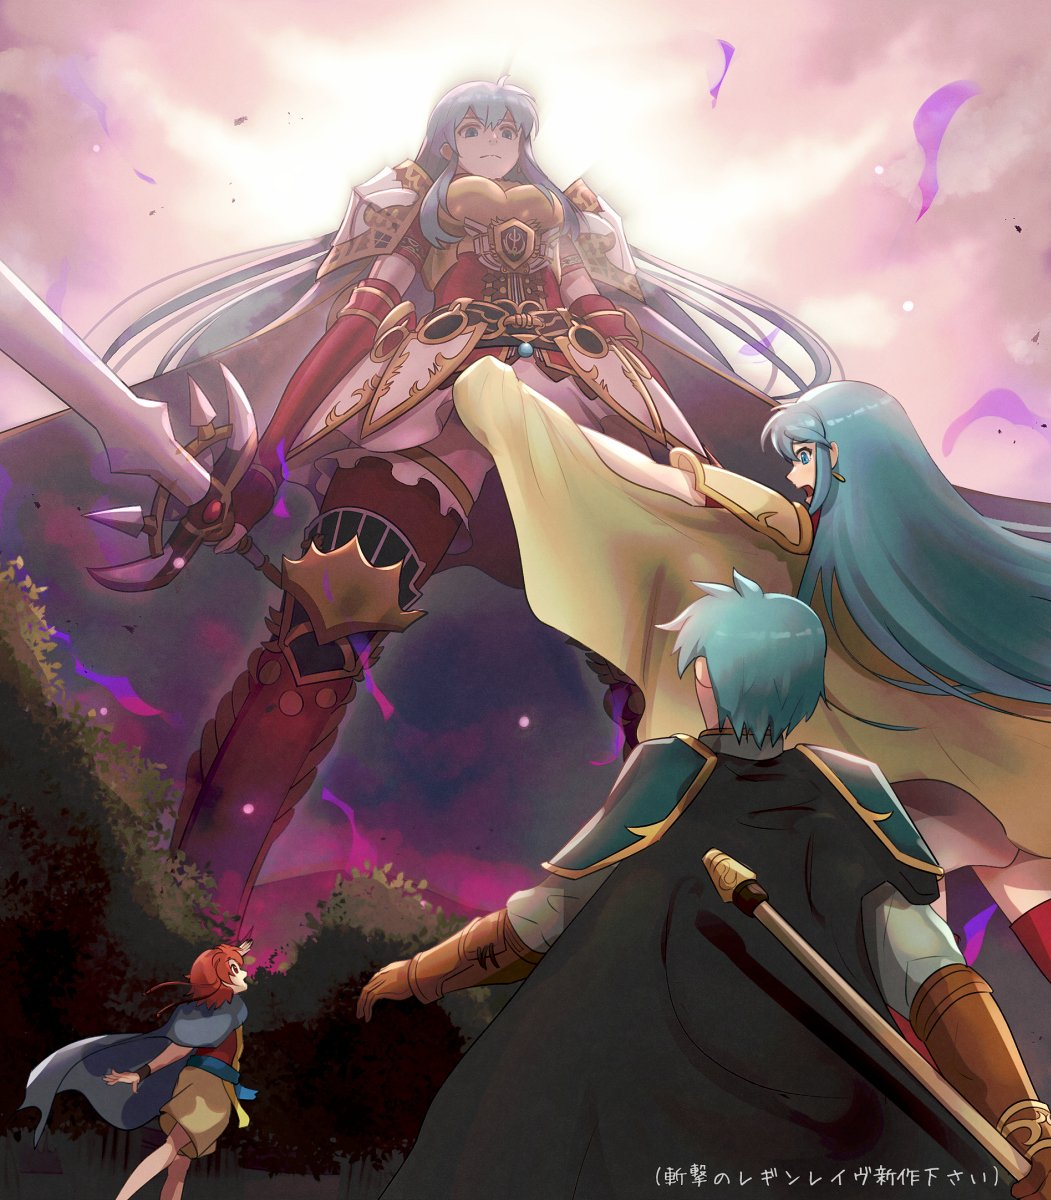 1girl 2boys aqua_eyes aqua_hair armor aura bangs blocking blush bush cape commentary_request dark_aura dark_persona dual_persona earrings eirika embarrassed ephraim ewan_(fire_emblem) expressionless fire_emblem fire_emblem:_seima_no_kouseki fire_emblem_heroes giantess gonzarez highres holding holding_lance holding_sword holding_weapon jewelry long_hair looking_down looking_up multiple_boys open_mouth orange_hair short_hair shoulder_armor skirt sky sword tears thigh-highs translated weapon zettai_ryouiki